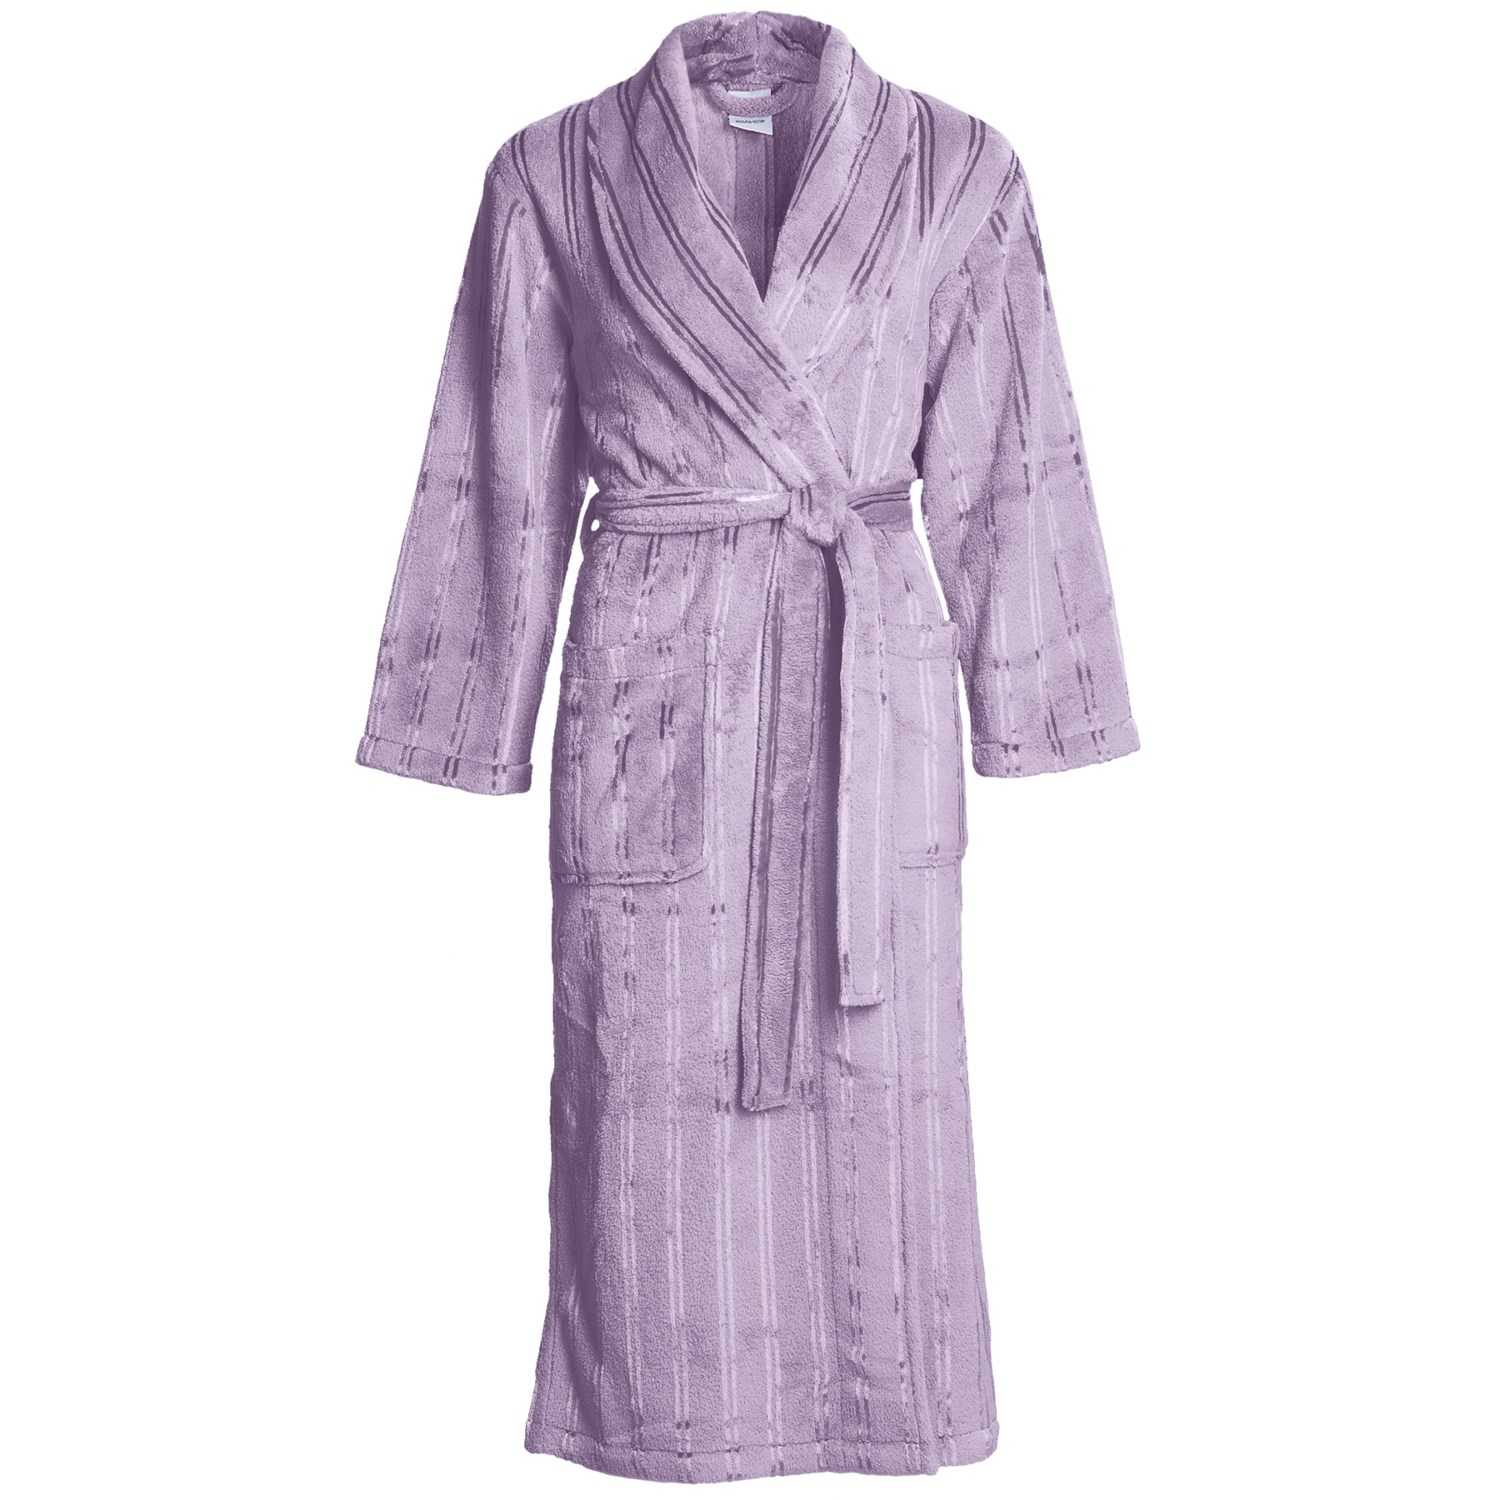 Armani International Waffle Knitted Linen Cotton Robe Slipper Guest Towel Hand Shop Best Sellers · Deals of the Day · Fast Shipping · Read Ratings & Reviews2,,+ followers on Twitter.